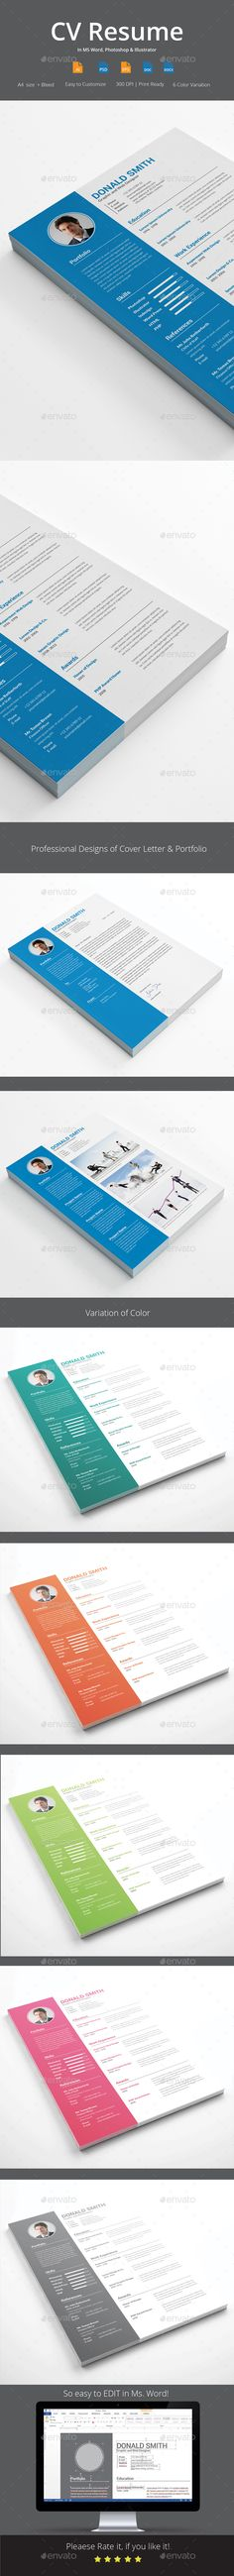 CV Resume Template. Download here: http://graphicriver.net/item/cv-resume/16009637?ref=ksioks